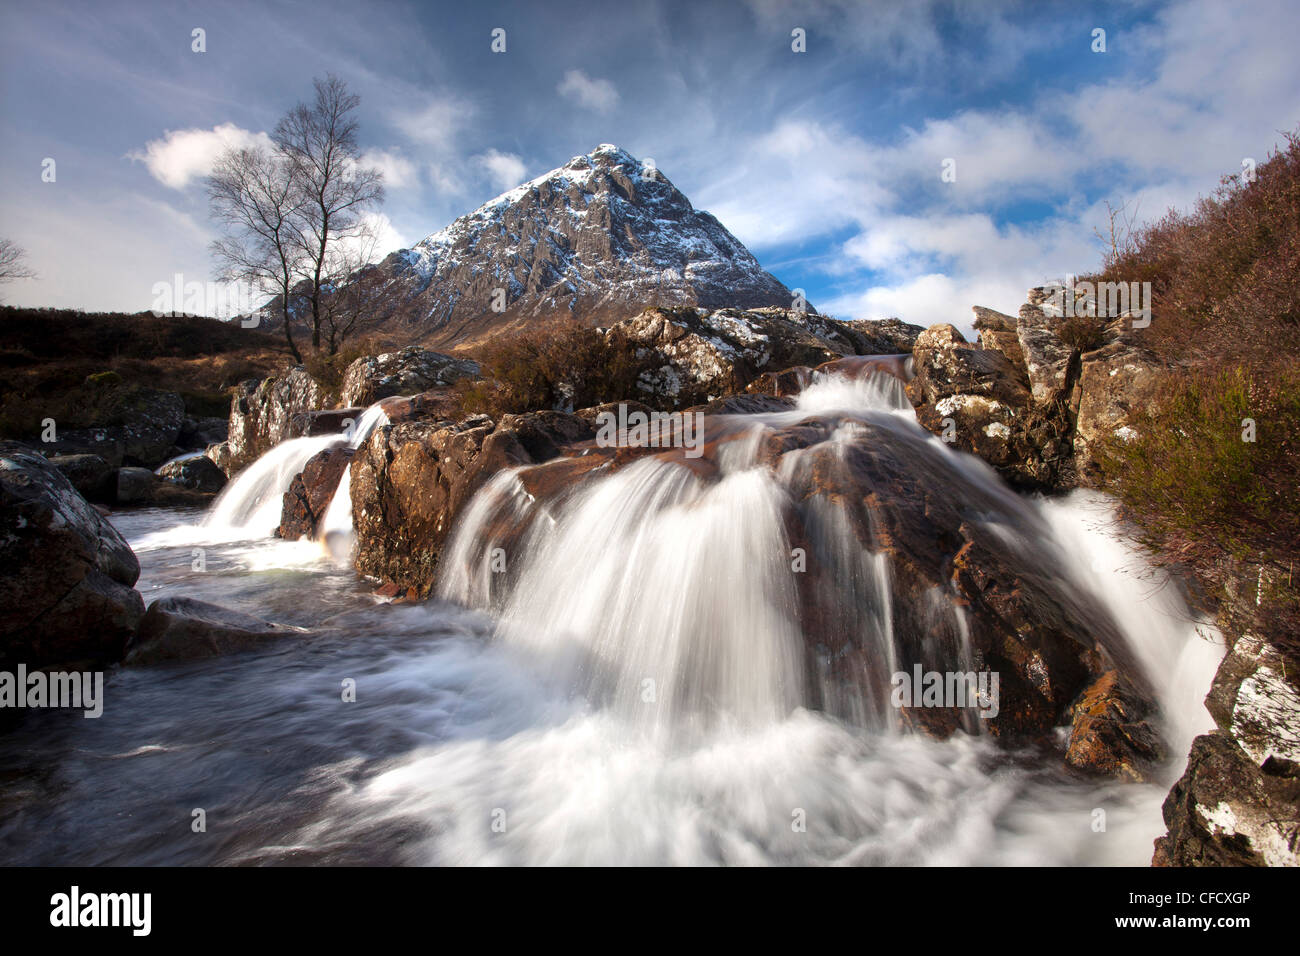 Winter view of Buachaile Etive More from the Coupall Falls on the River Coupall, Glen Etive, Highlands, Scotland, - Stock Image